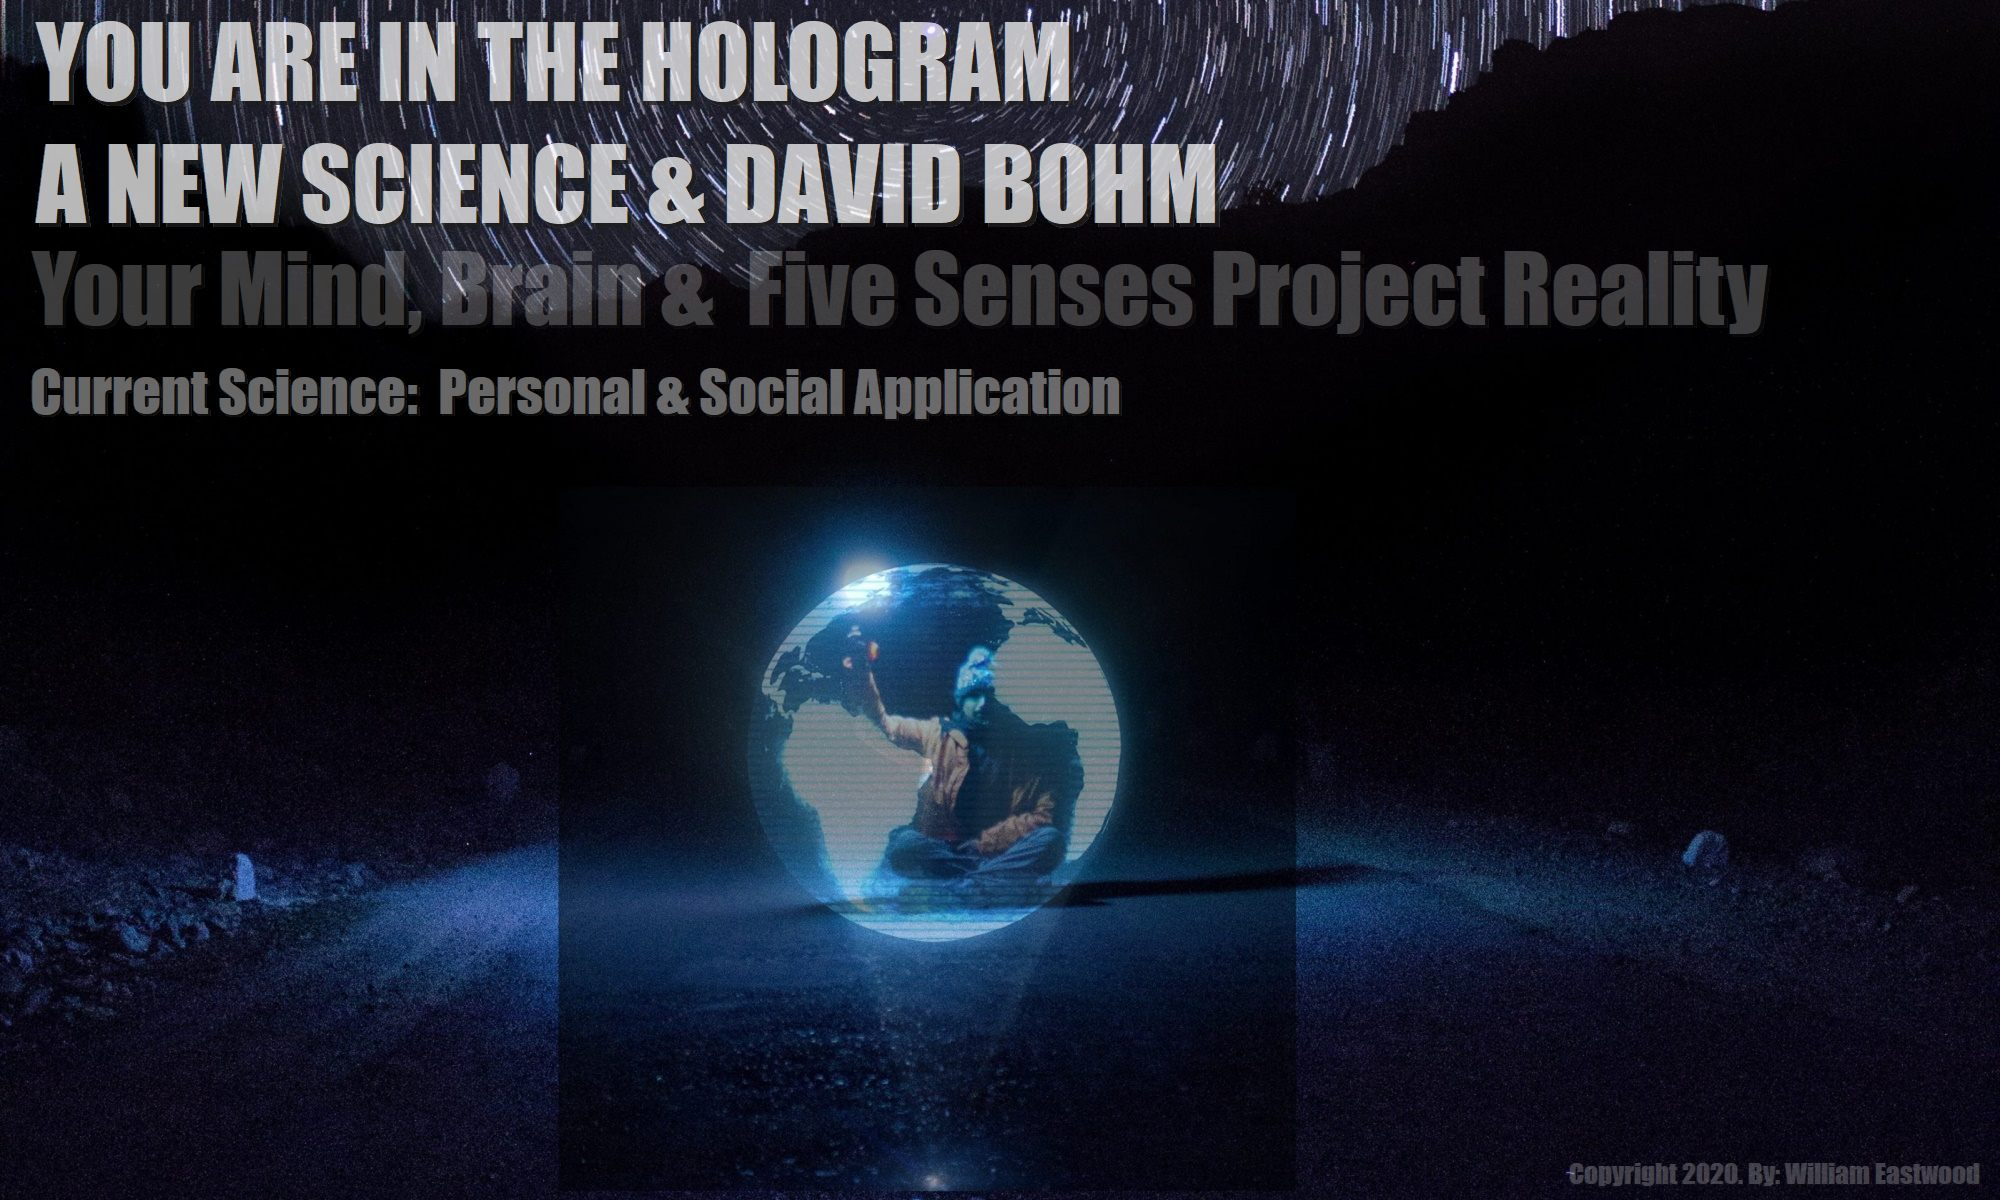 Showing-how-your-mind-brain-5-senses-project-reality-the-holomovement-holographic-universe